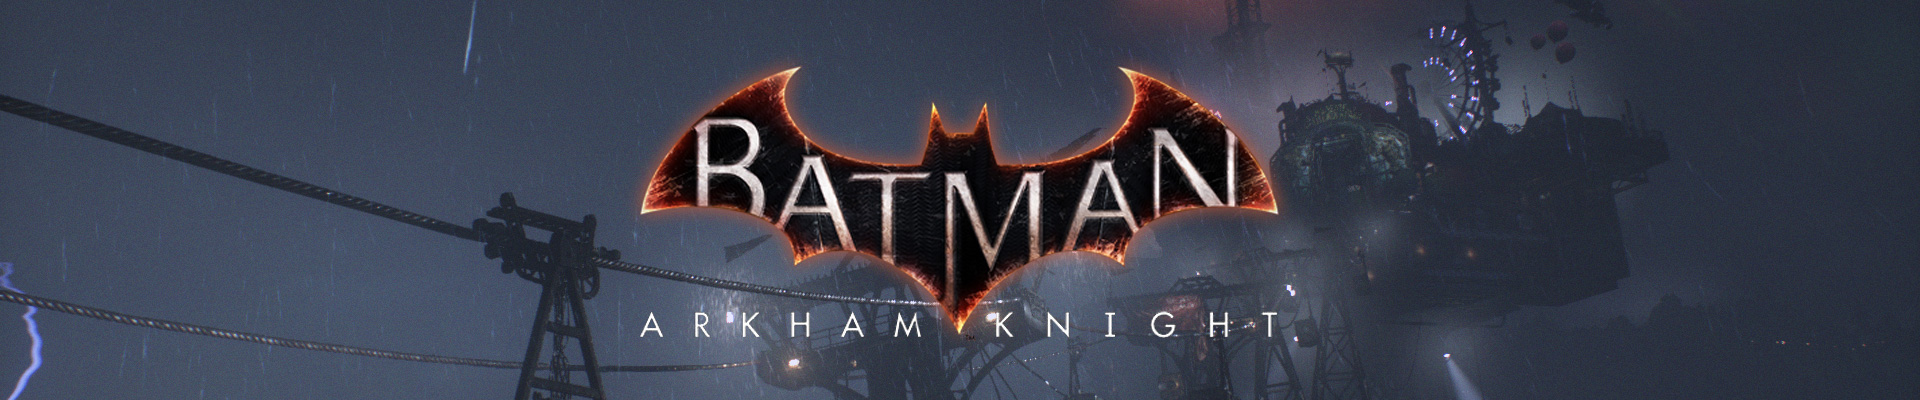 Revisiting Batman: Arkham Knight with DLCs